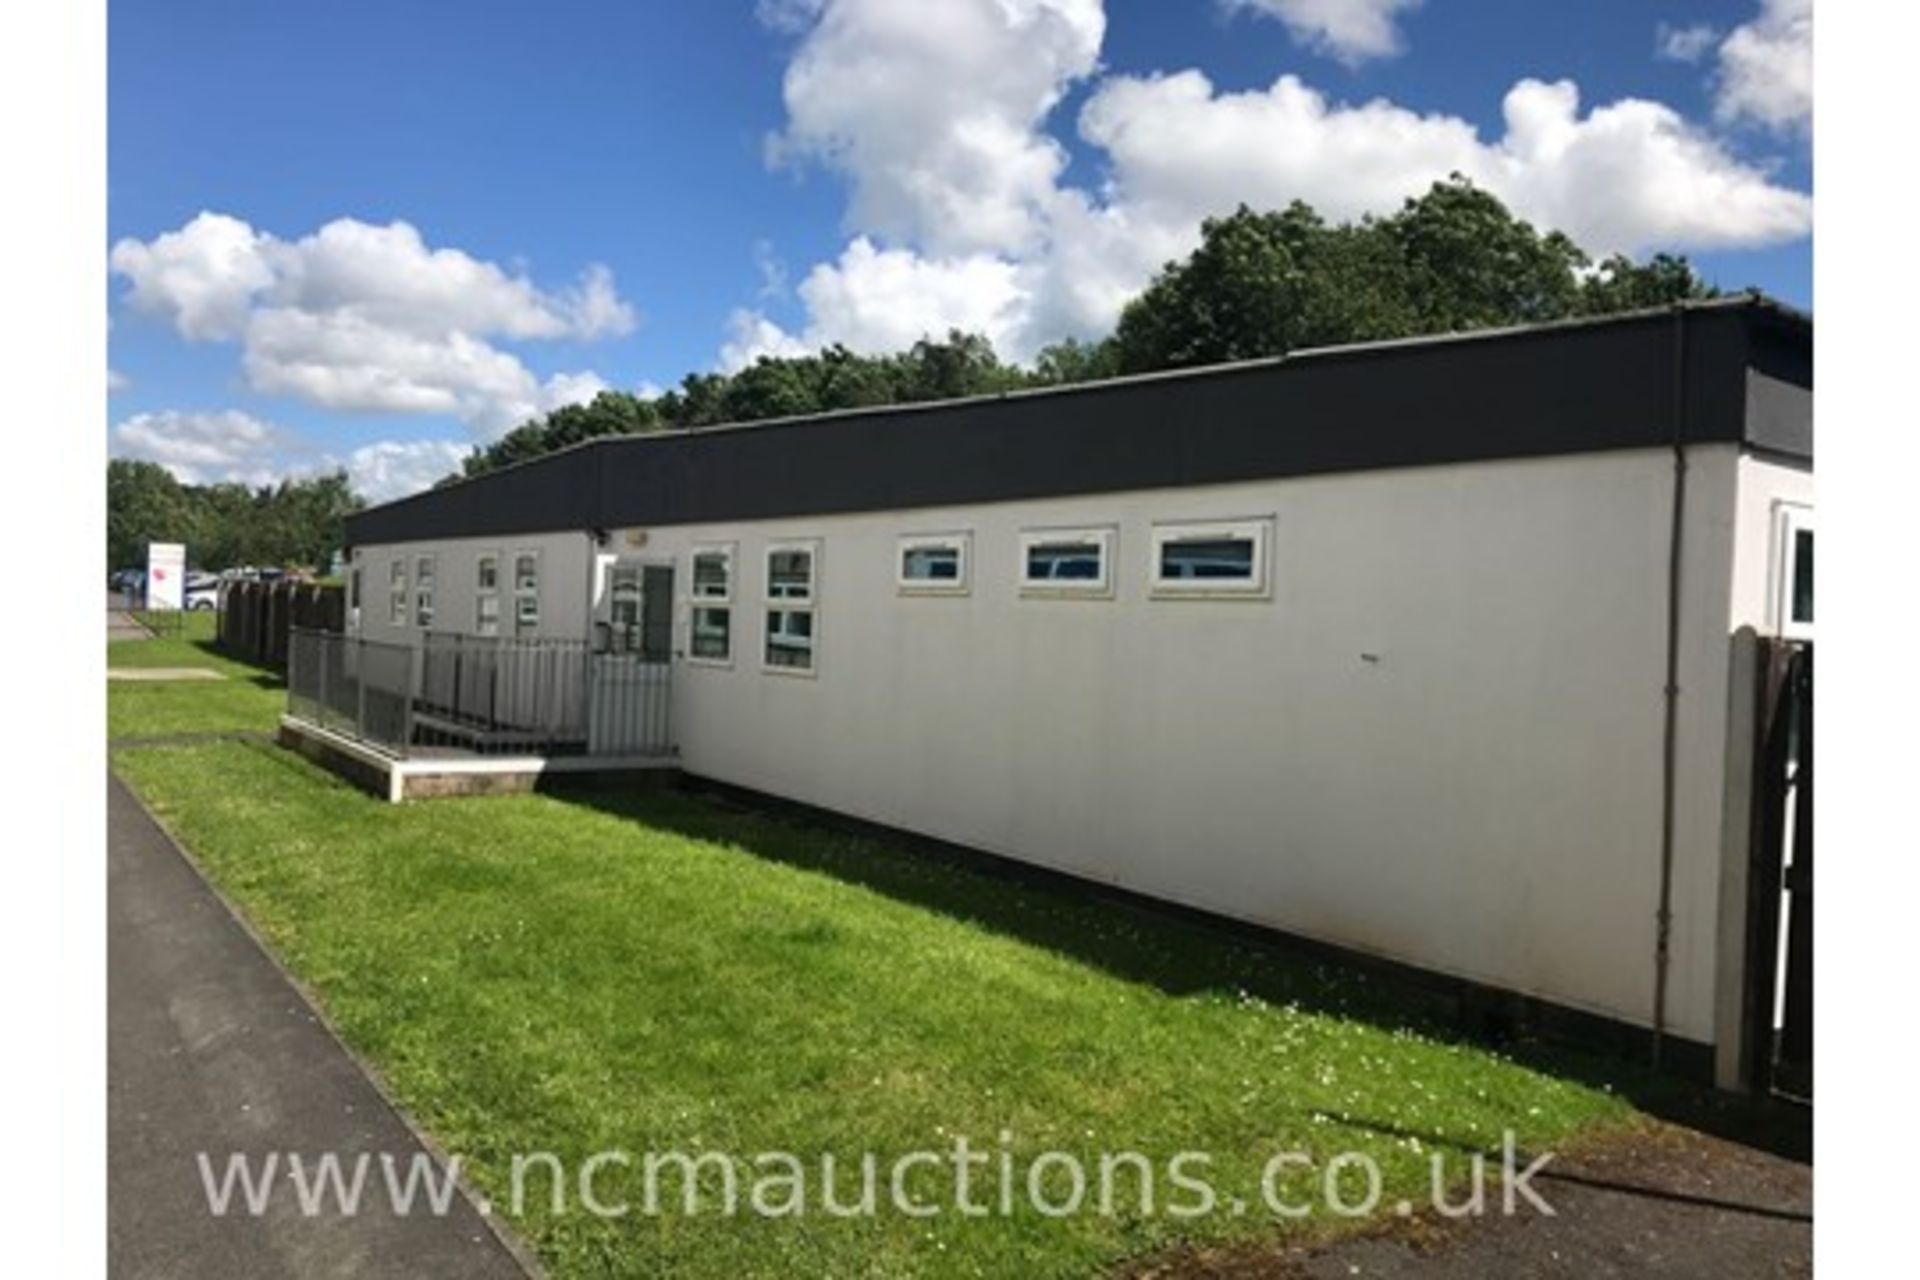 Lot 3 - Building/Portacabin